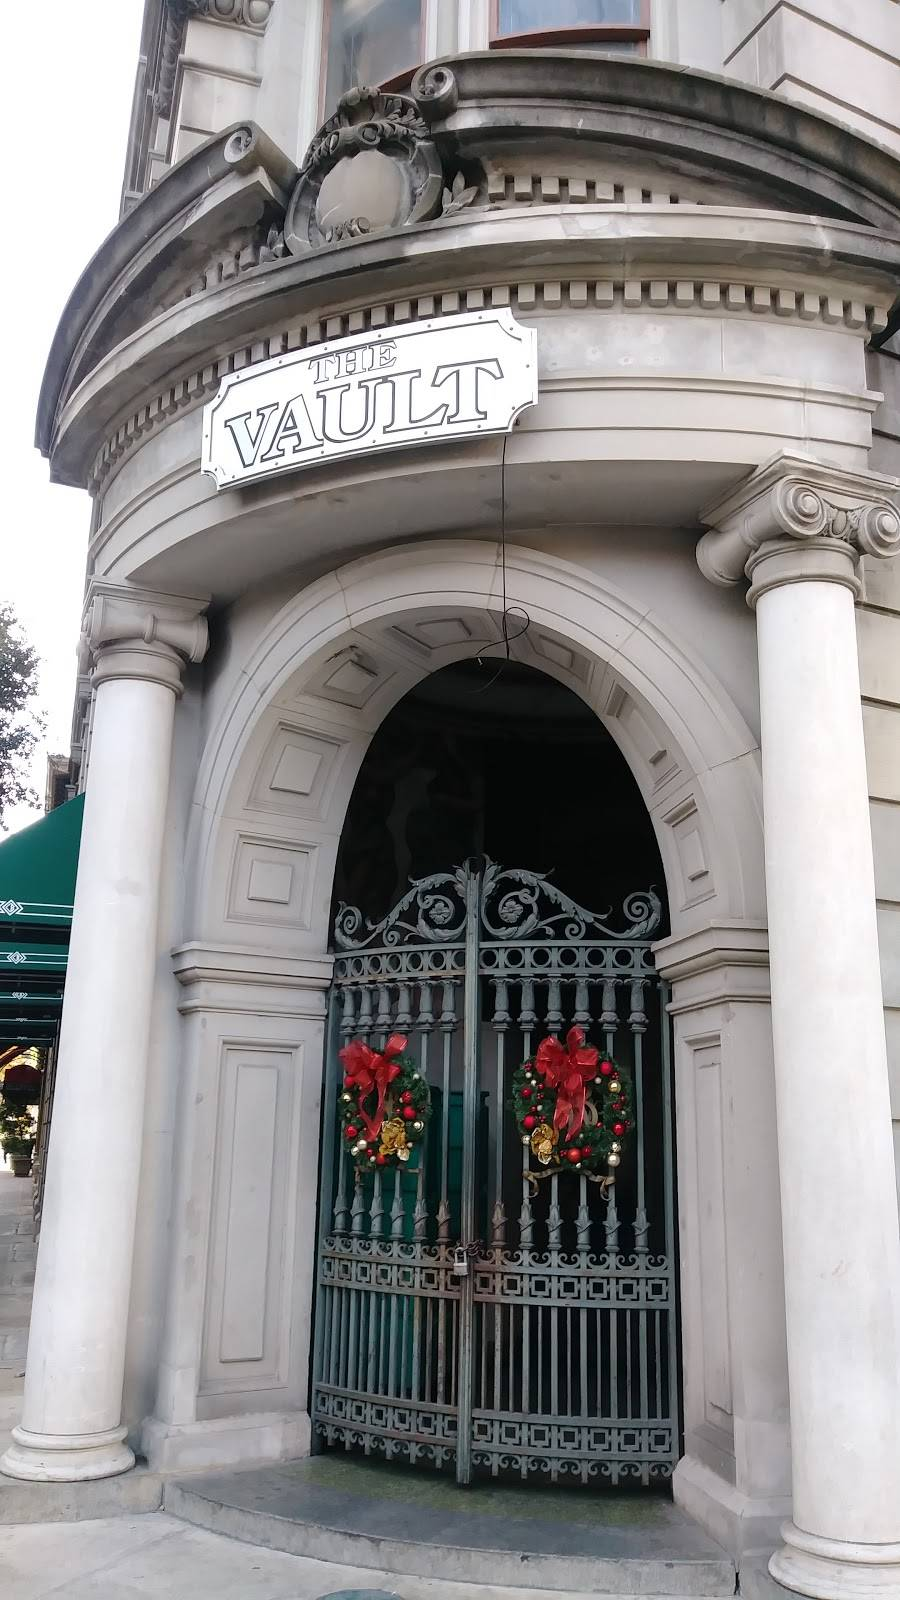 The Vault | restaurant | 314 E Commerce St, San Antonio, TX 78205, USA | 2102248484 OR +1 210-224-8484